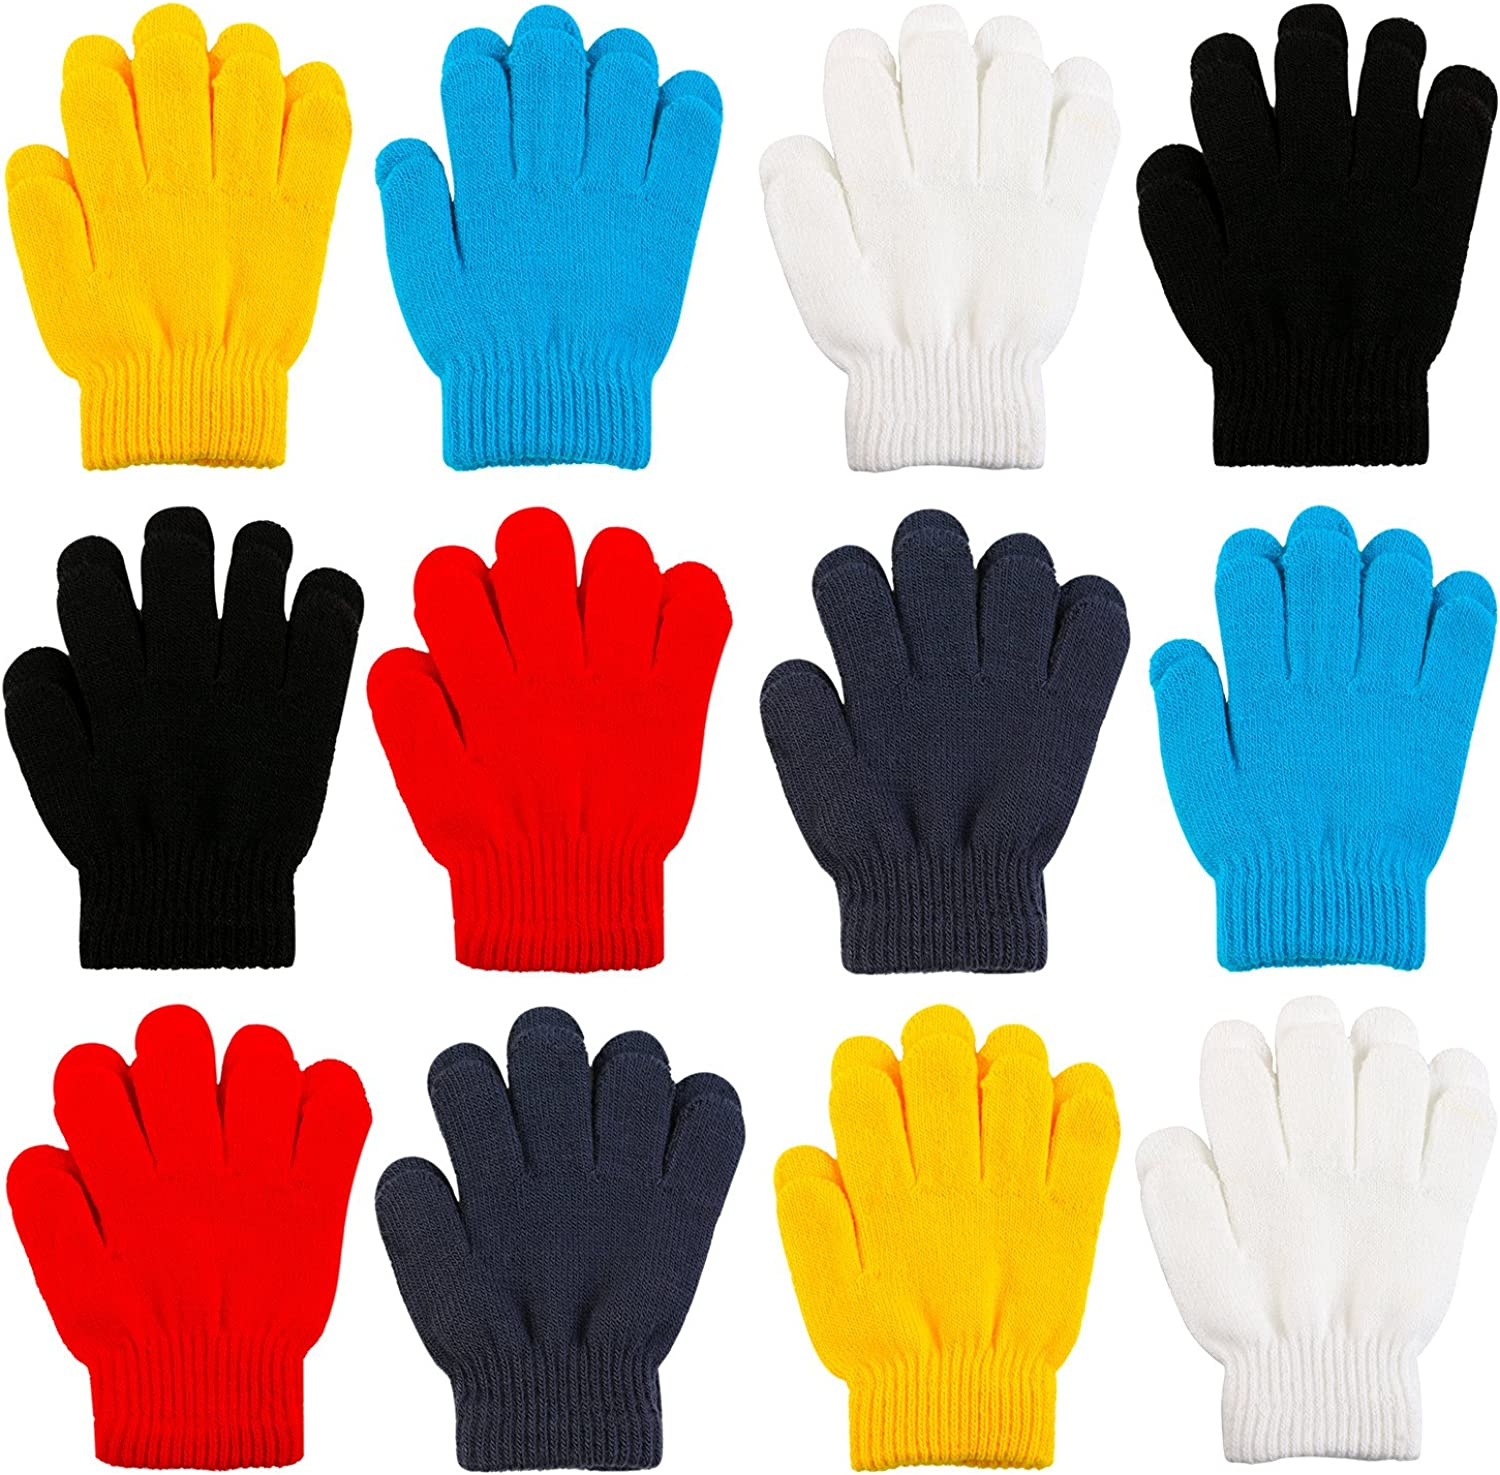 Cooraby 12 Pairs Kids Winter Magic Gloves Children Stretchy Warm Magic Gloves Boys or Girls Knit Gloves